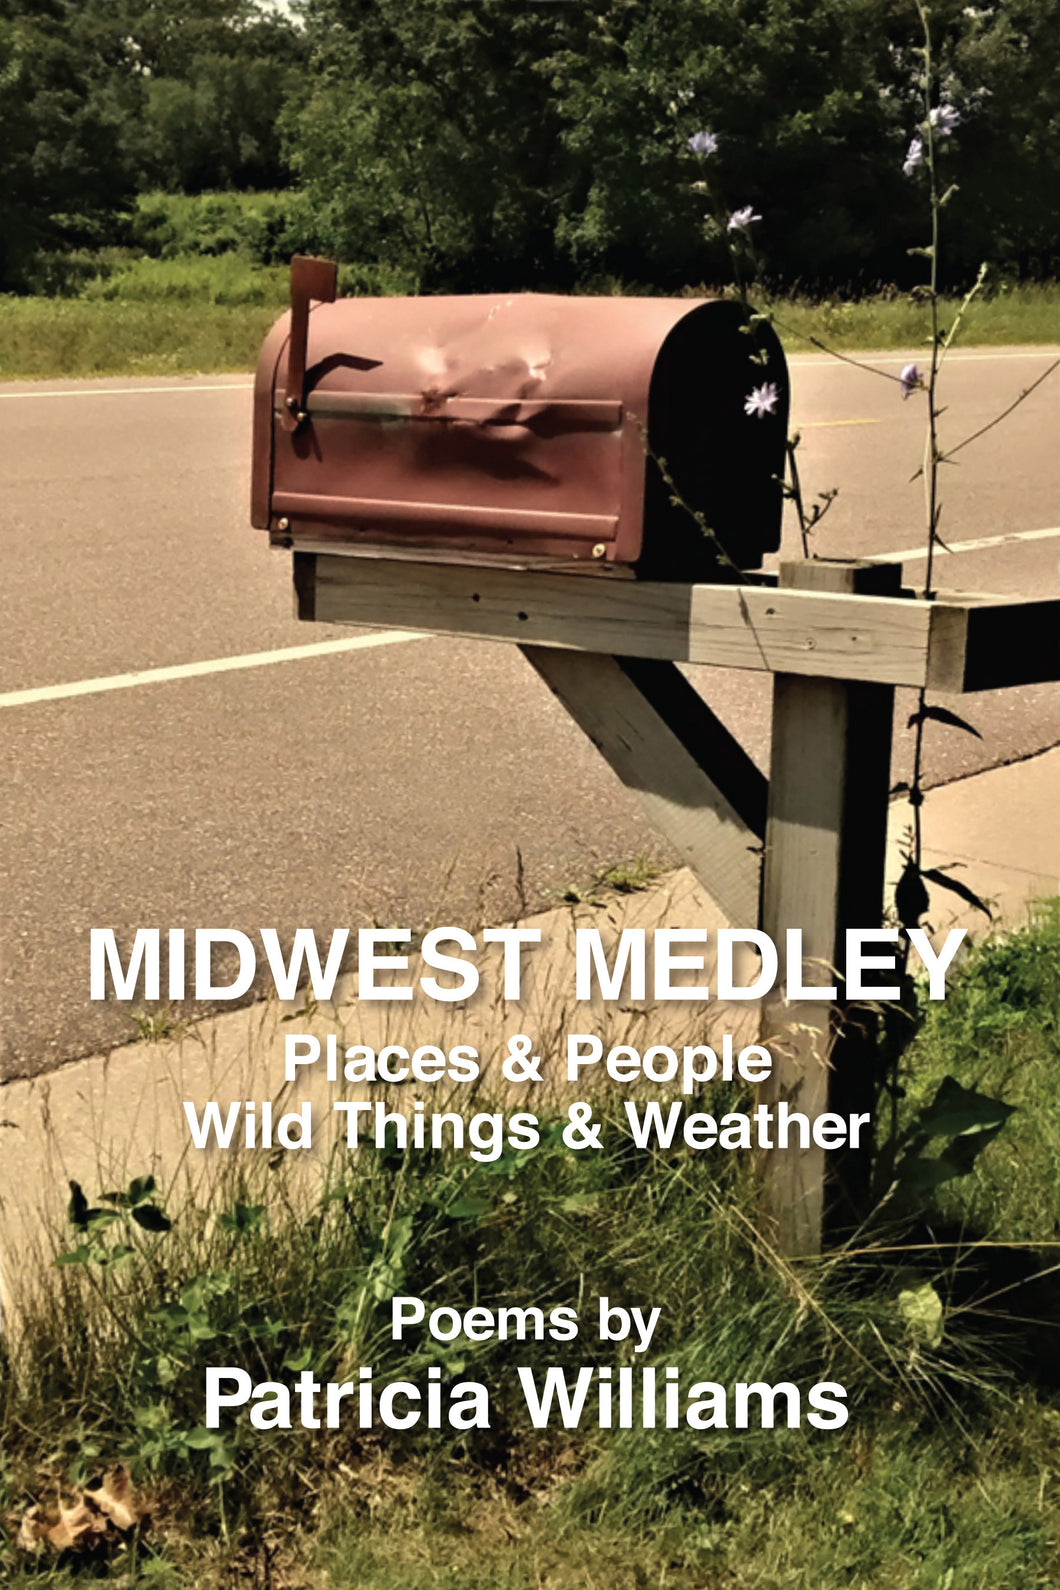 Midwest Medley: Places & People, Wild Things & Weather